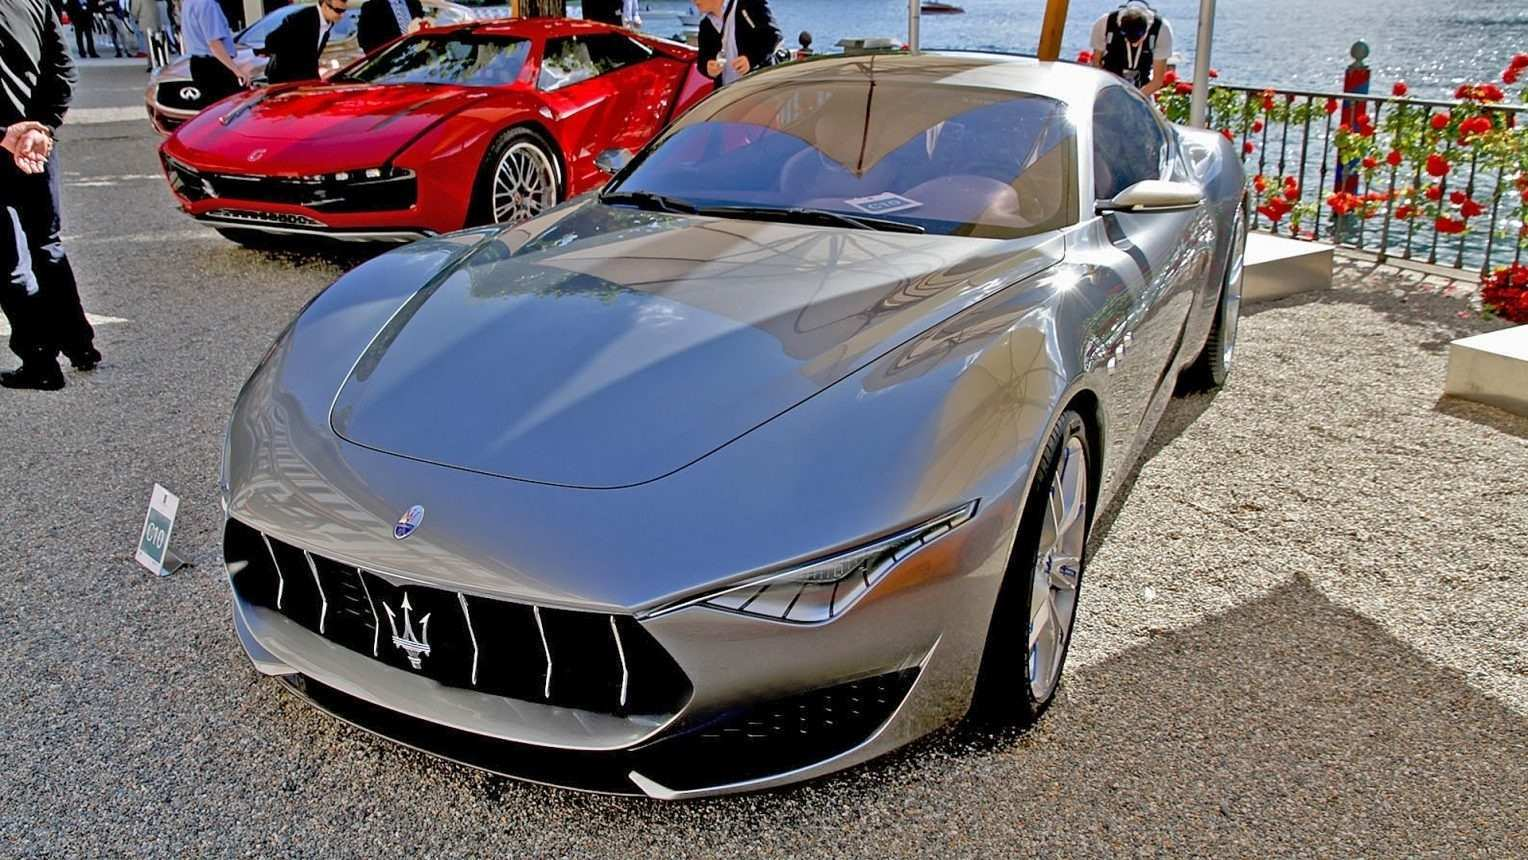 41 Concept of 2019 Maserati Alfieri Pricing for 2019 Maserati Alfieri